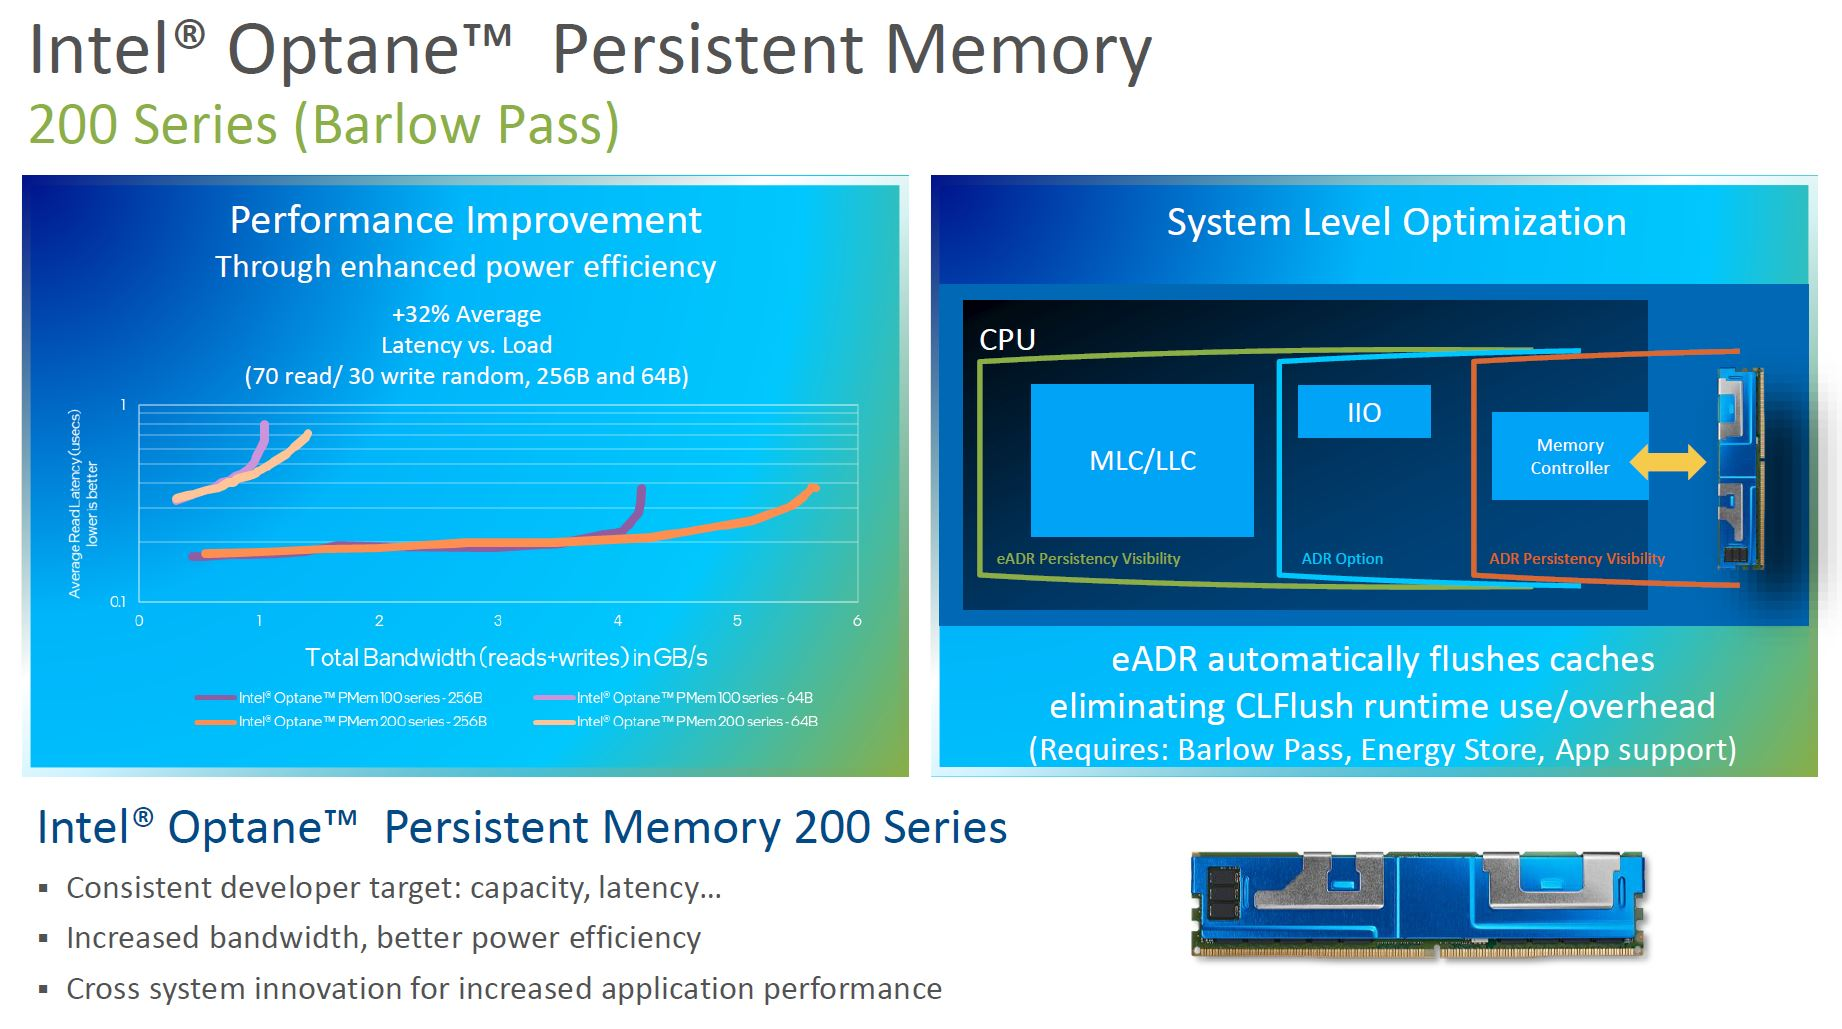 3rd Generation Intel Xeon Scalable Ice Lake Optane Persistent Memory 200